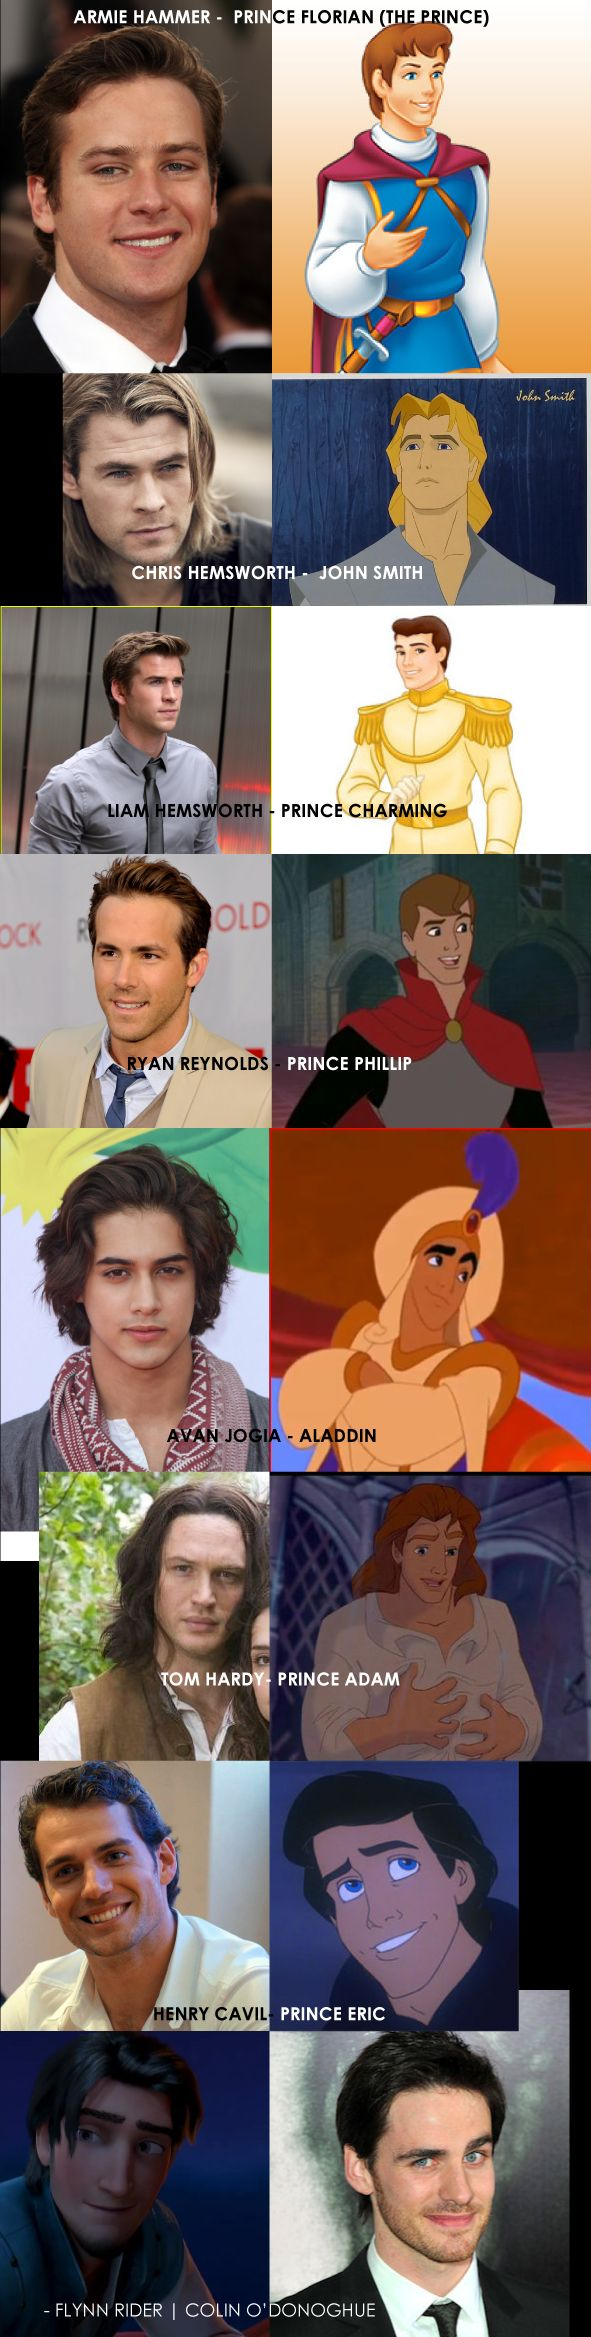 This is kind of scary accurate. Even though the Prince from Snow White and the Seven Dwarfs is actually named Ferdinand. But whatev. ;)